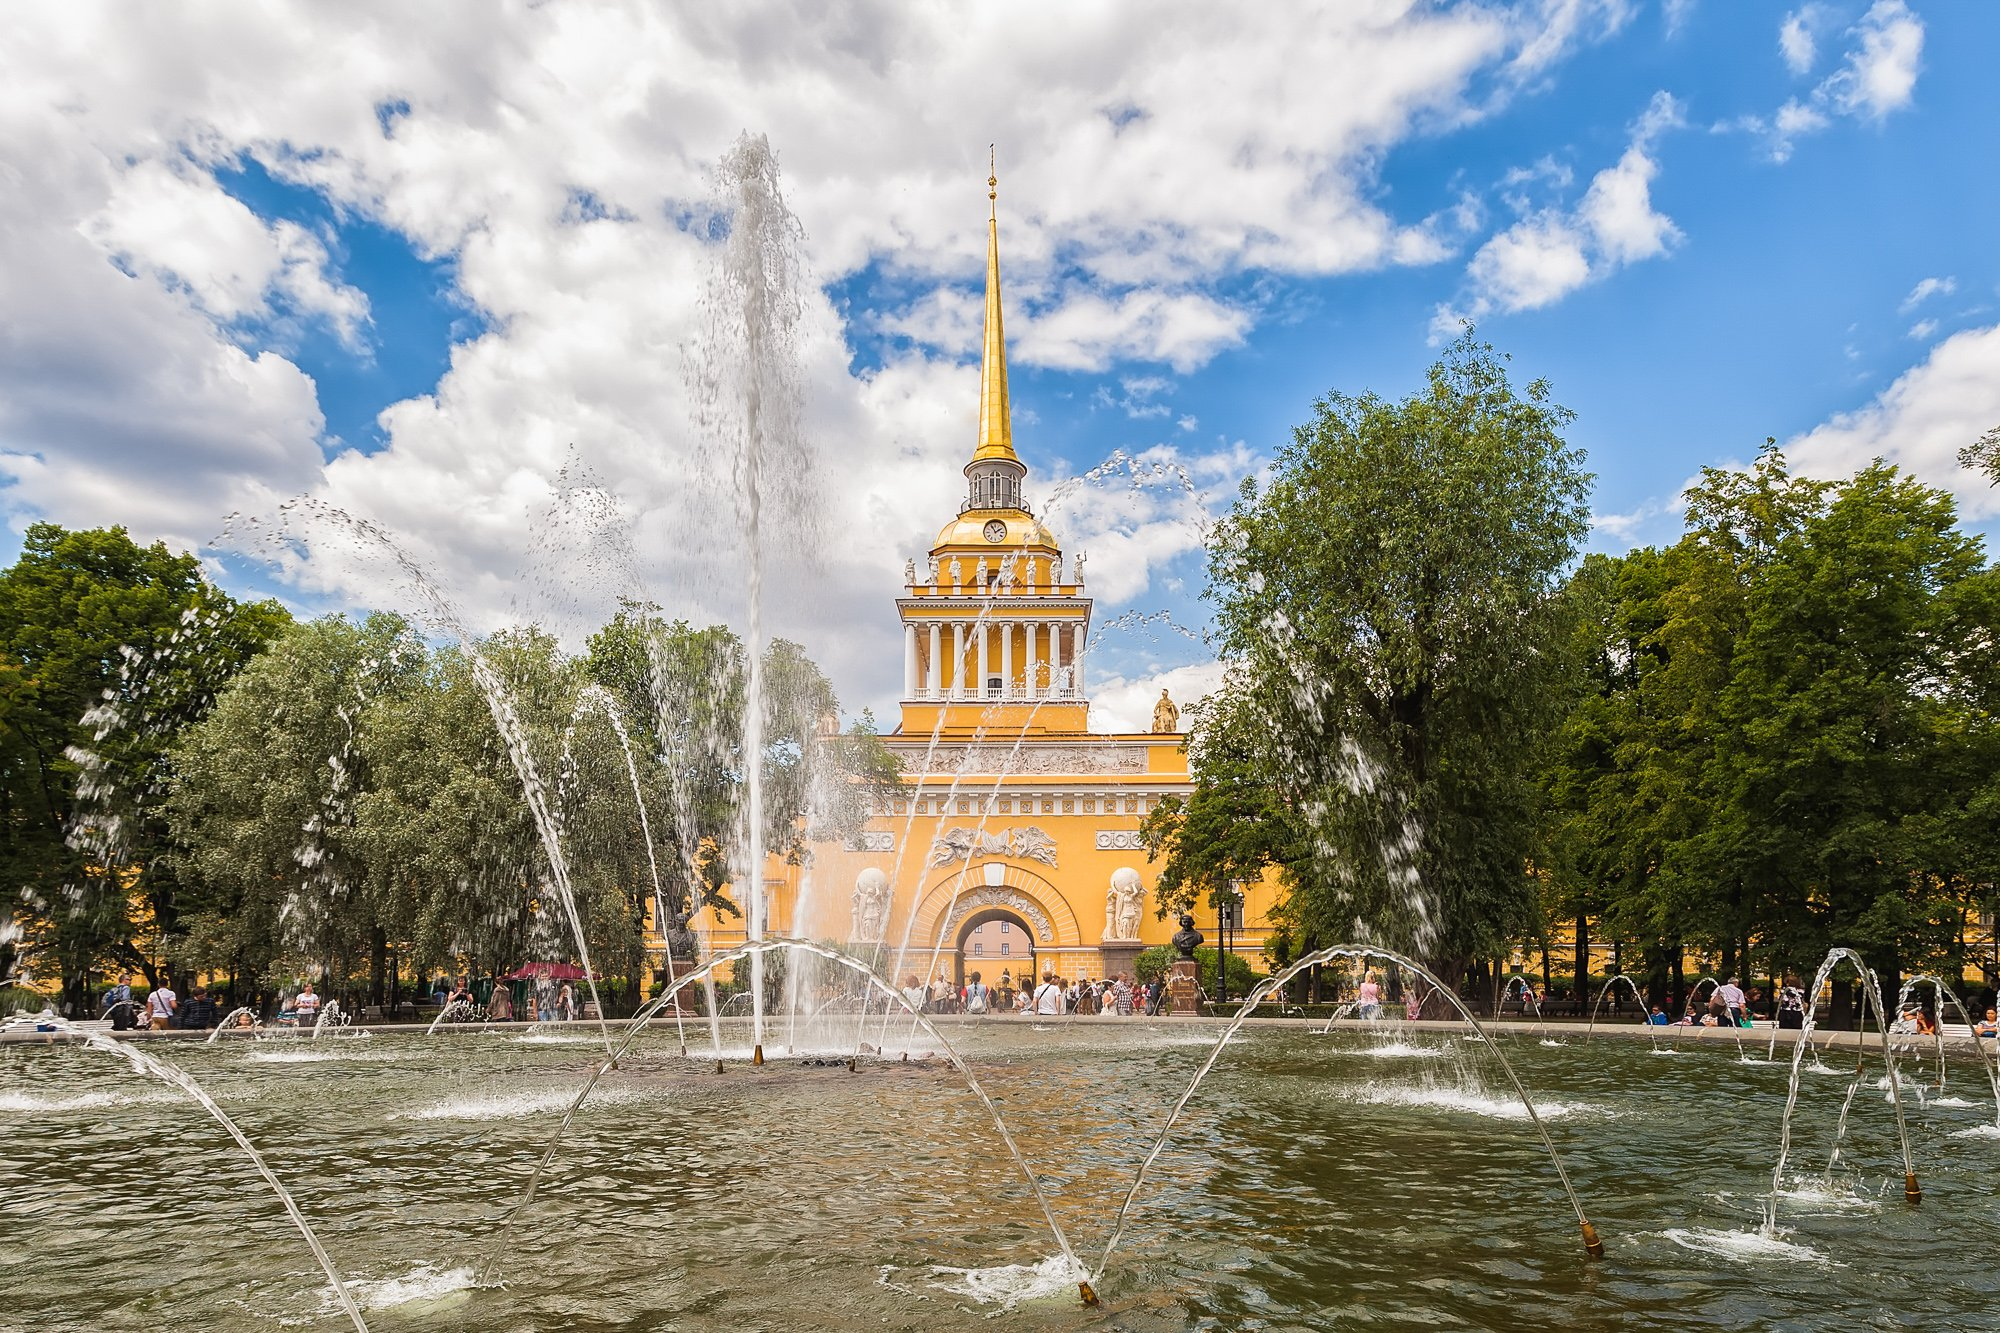 Admiralty building and fountain in the garden in Saint Petersburg, Russia